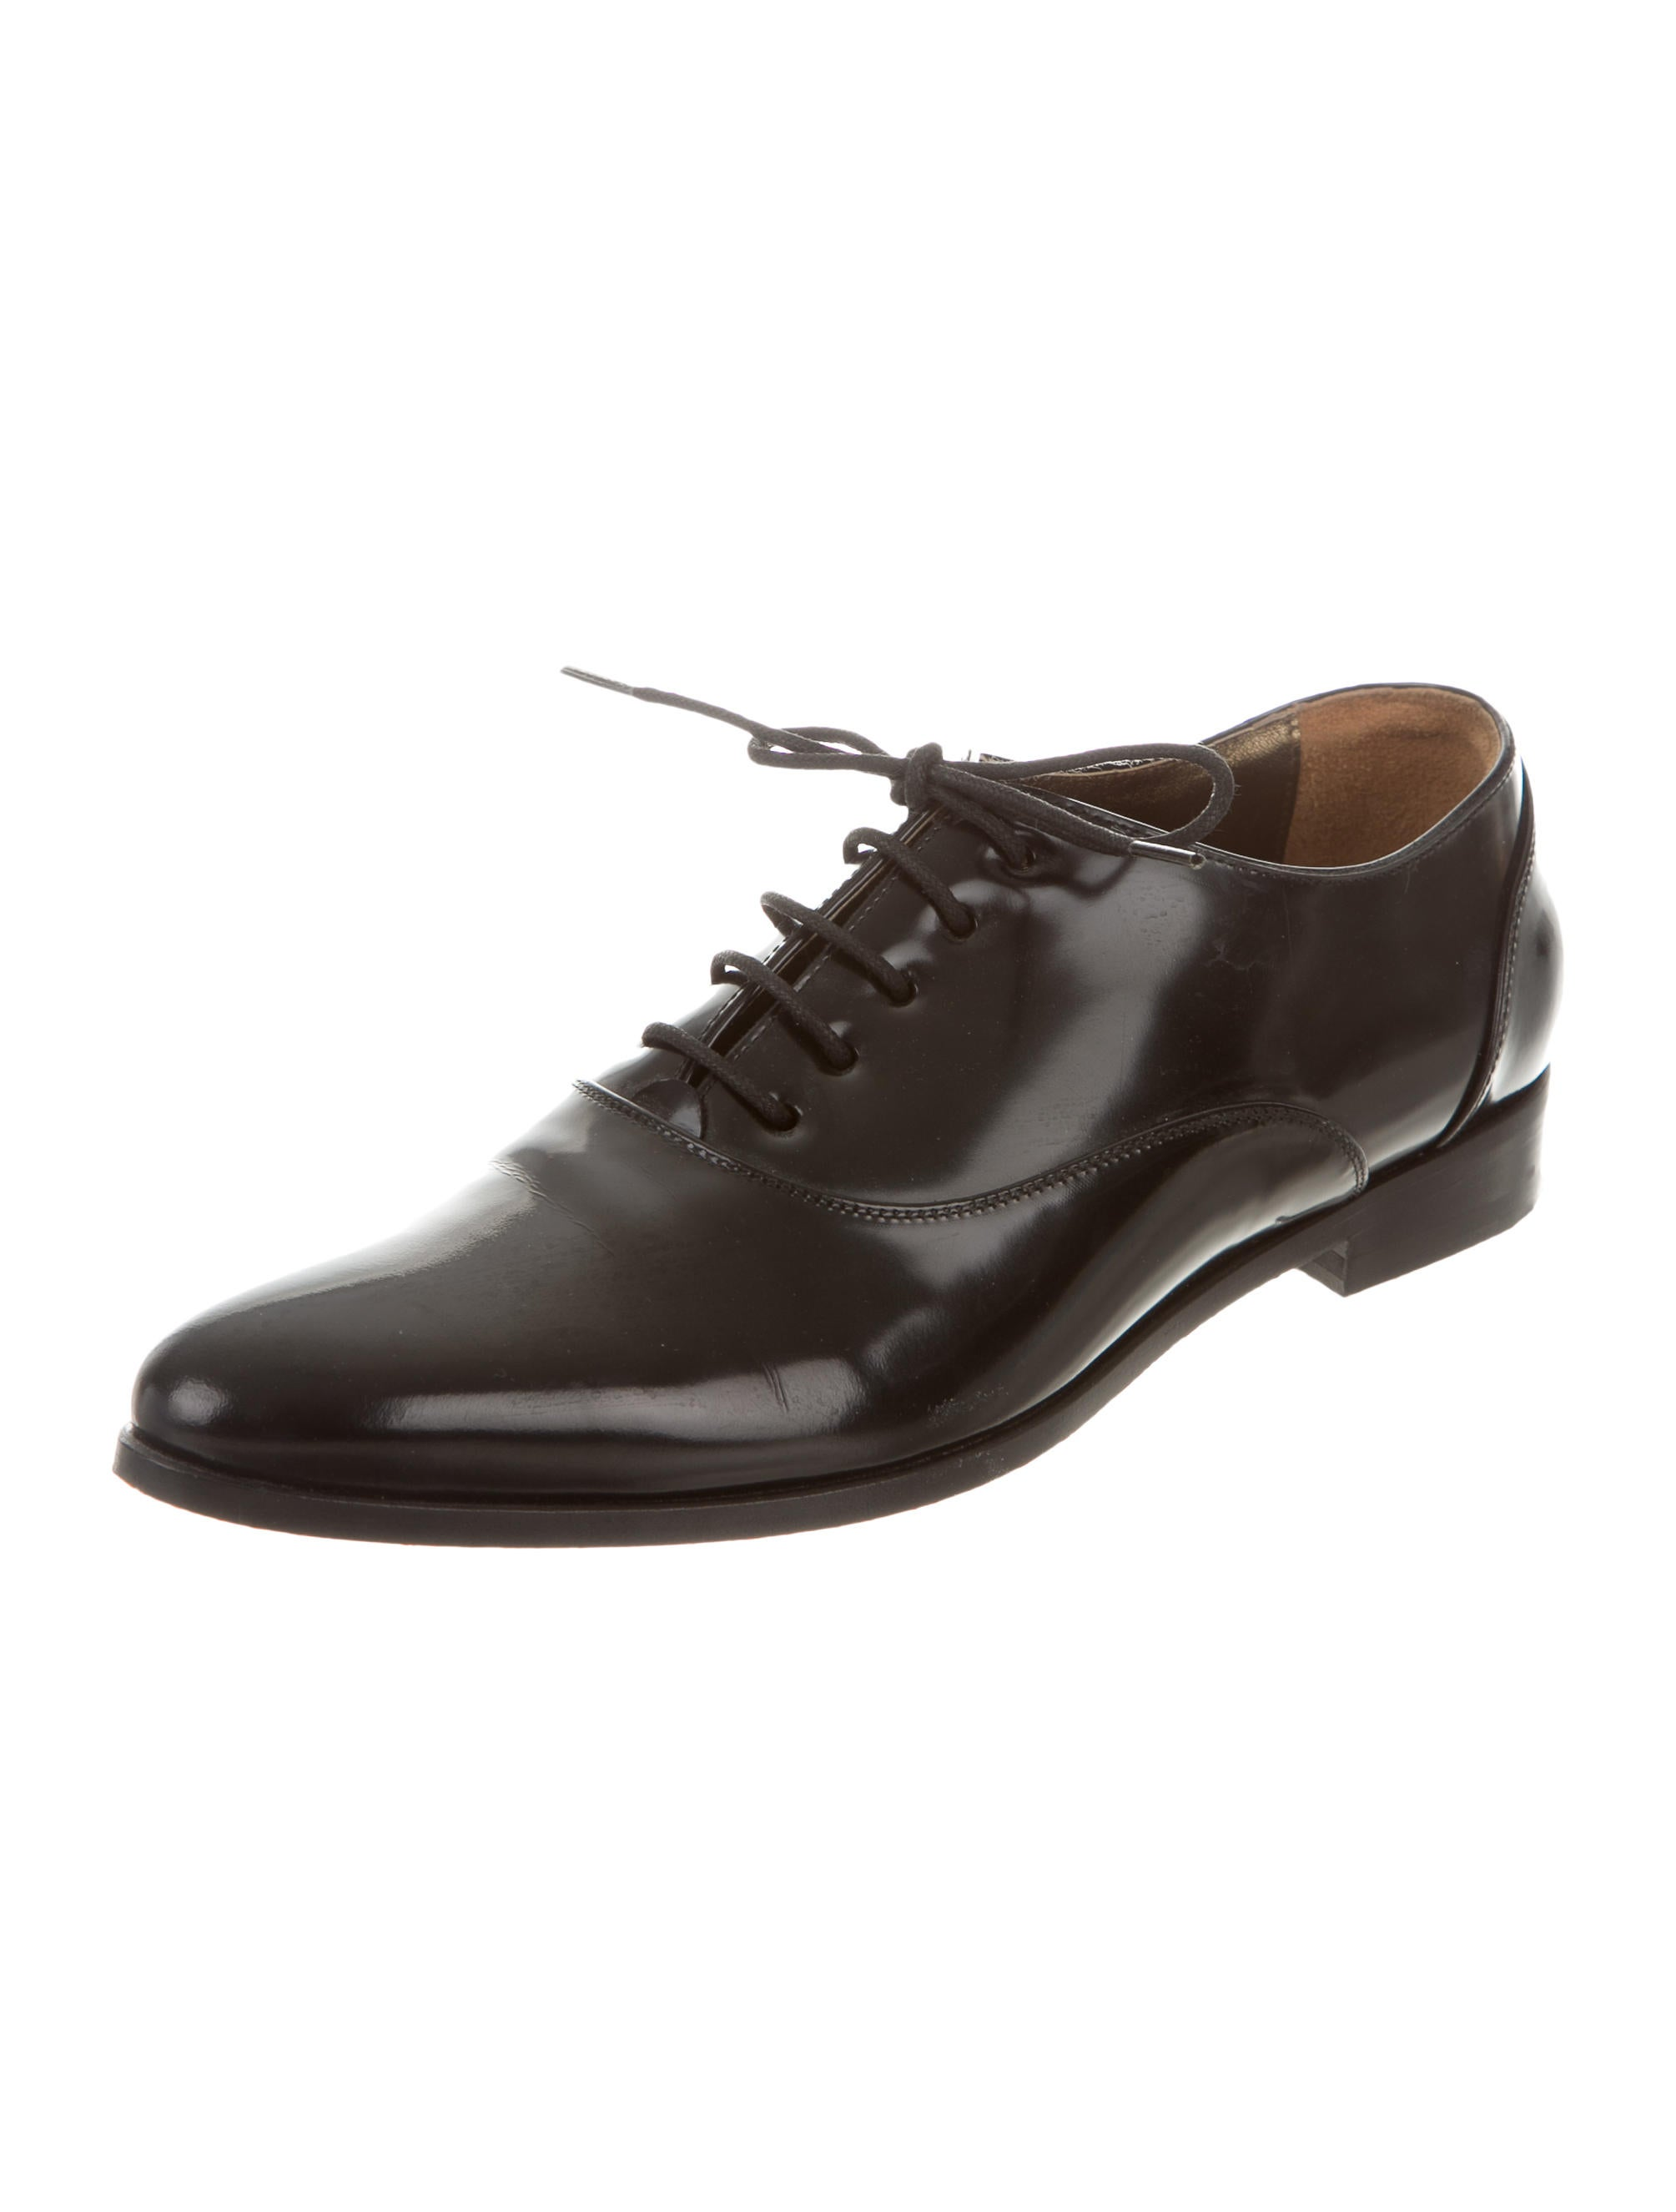 Shop Dune London's collection of men's formal shoes for those important occasions or for a workwear staple. Opt for timeless simplicity with an attention to detail. Step into Winter and smarten up a classic with double buckle monk shoes and formal lace up styles. If you want something more classic.